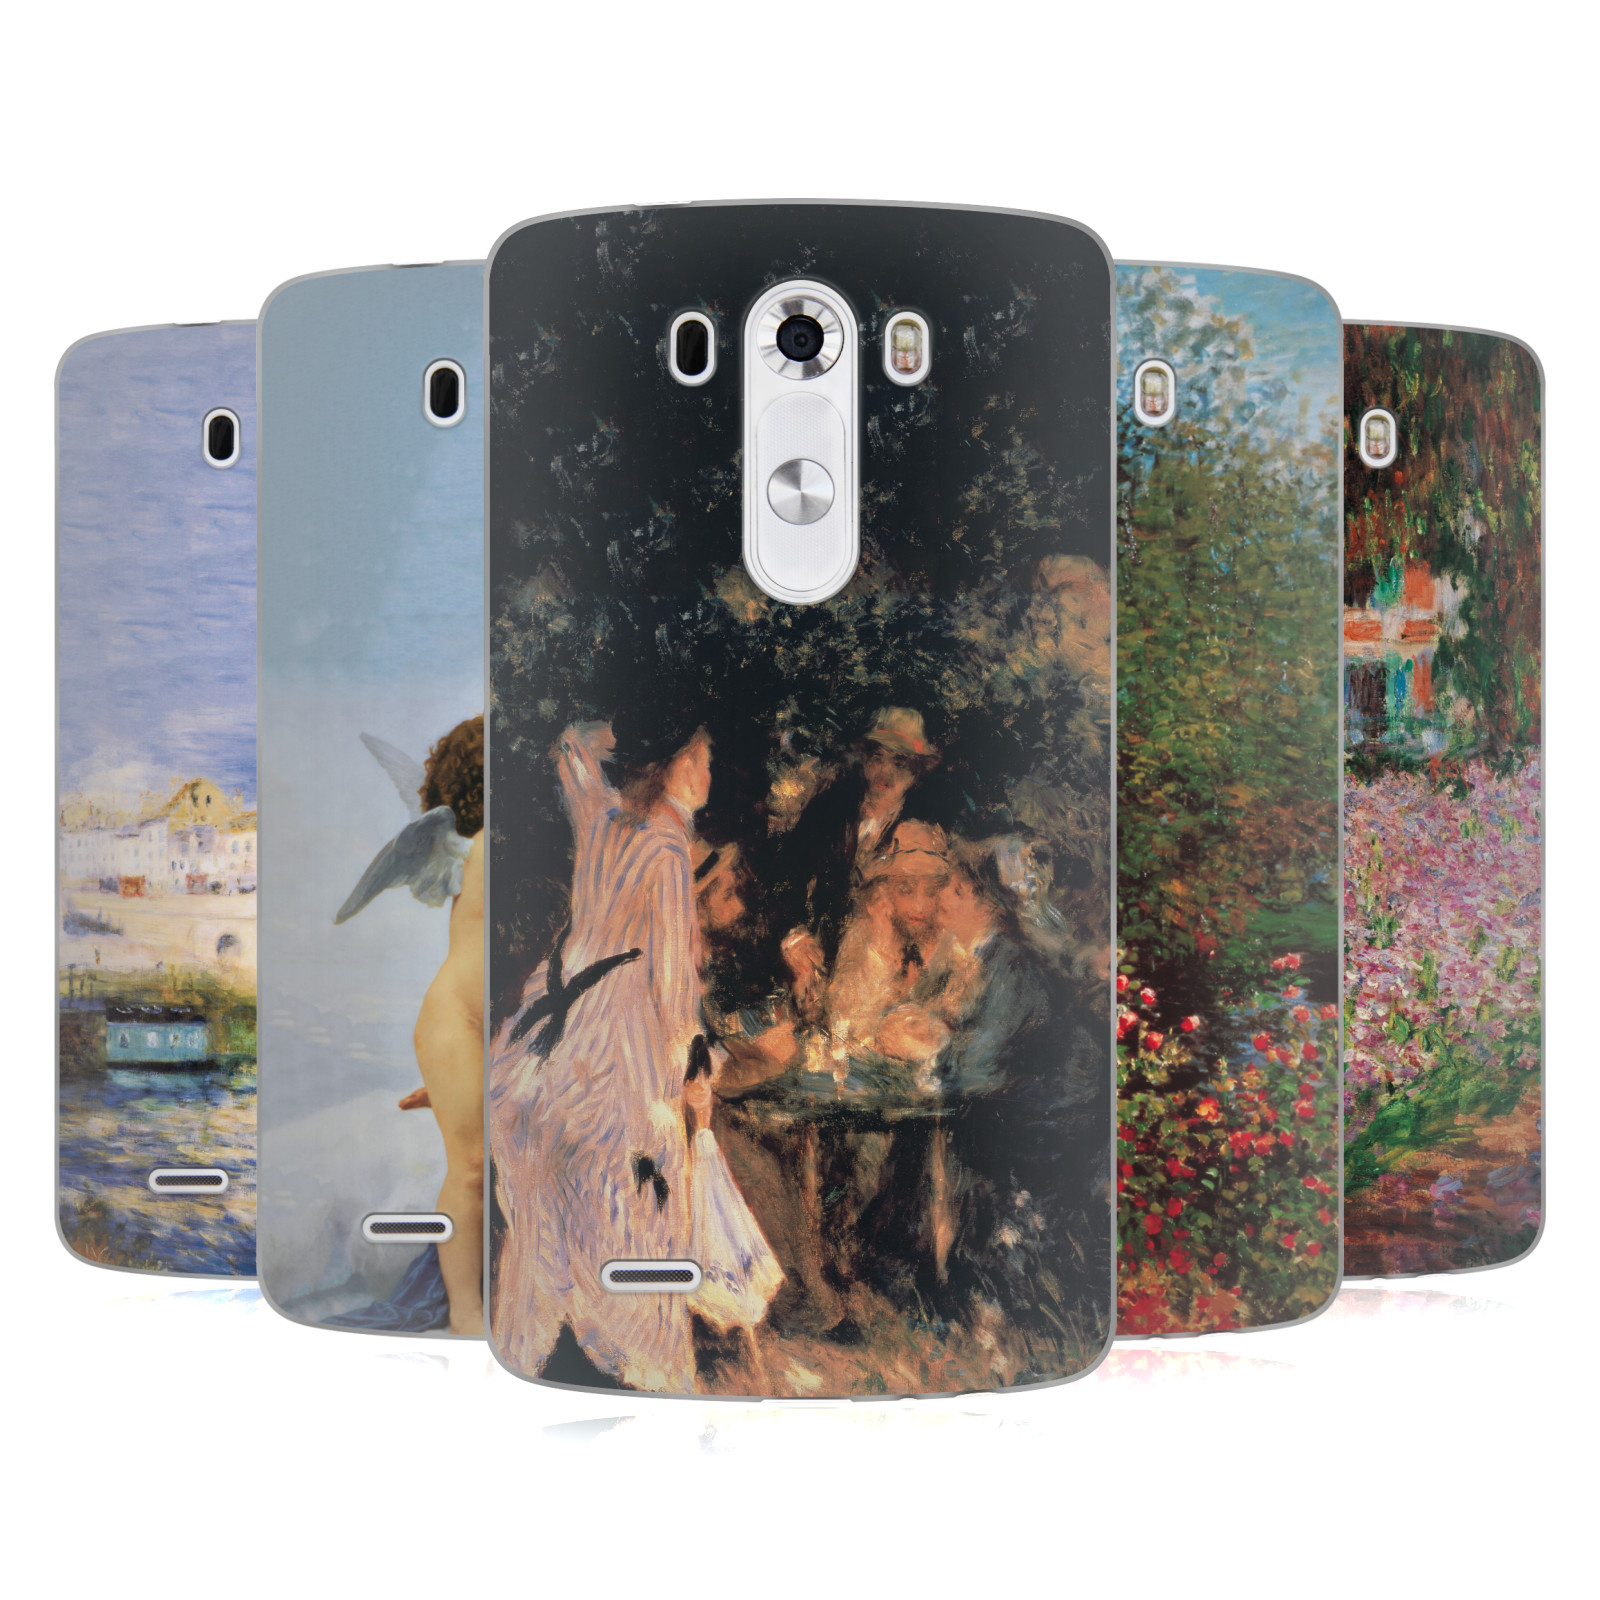 OFFICIEL-MASTERS-COLLECTION-PEINTURES-1-ETUI-COQUE-EN-GEL-POUR-LG-TELEPHONES-1